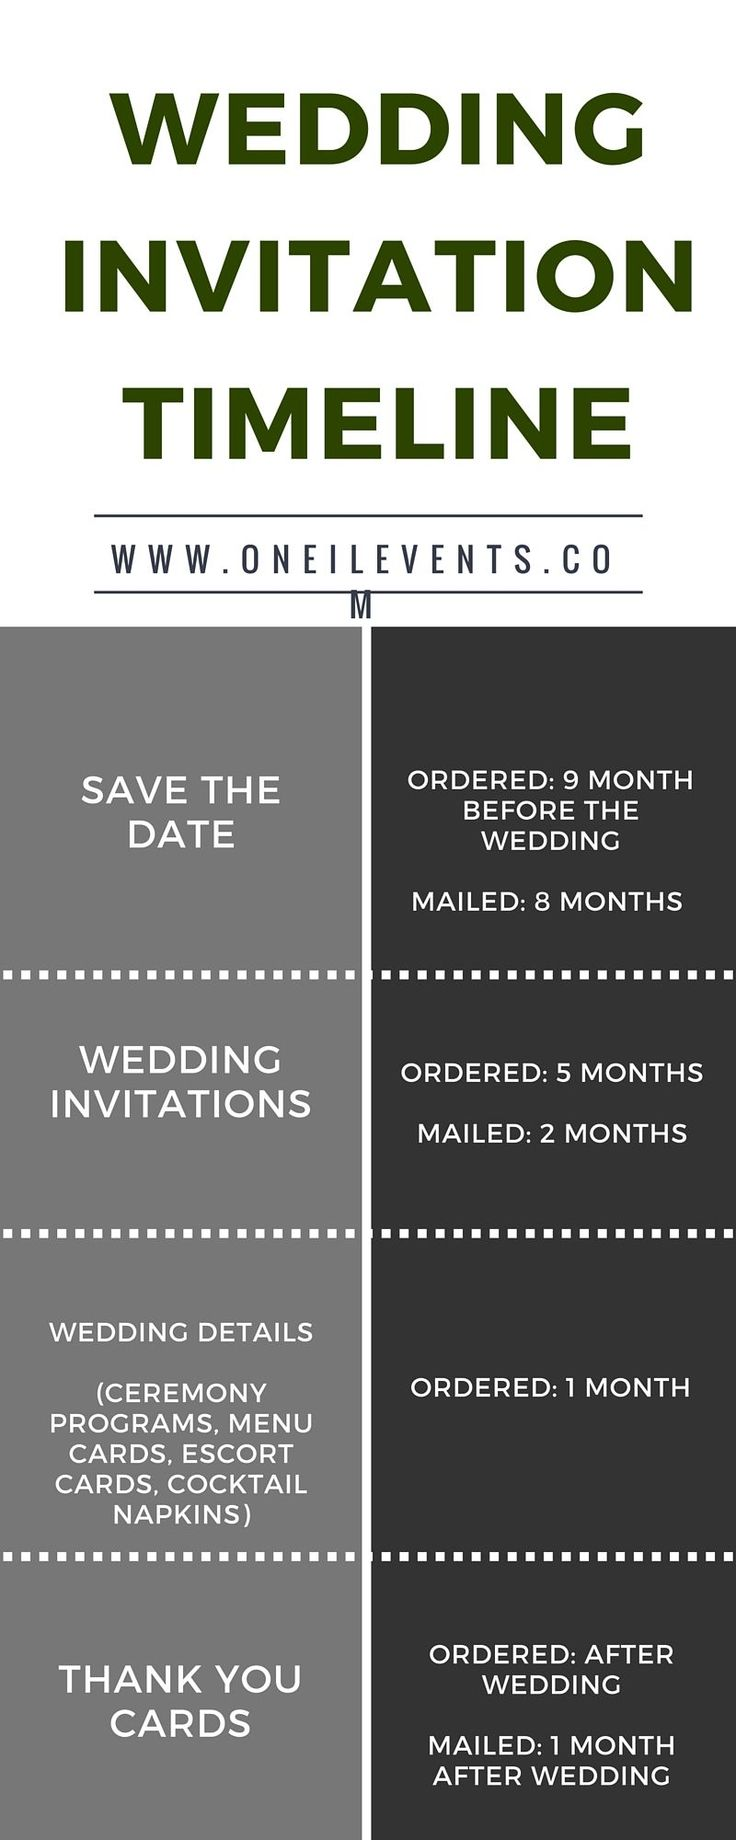 diy wedding invitations easy to follow wedding invitation timeline - When Should You Send Out Wedding Invitations